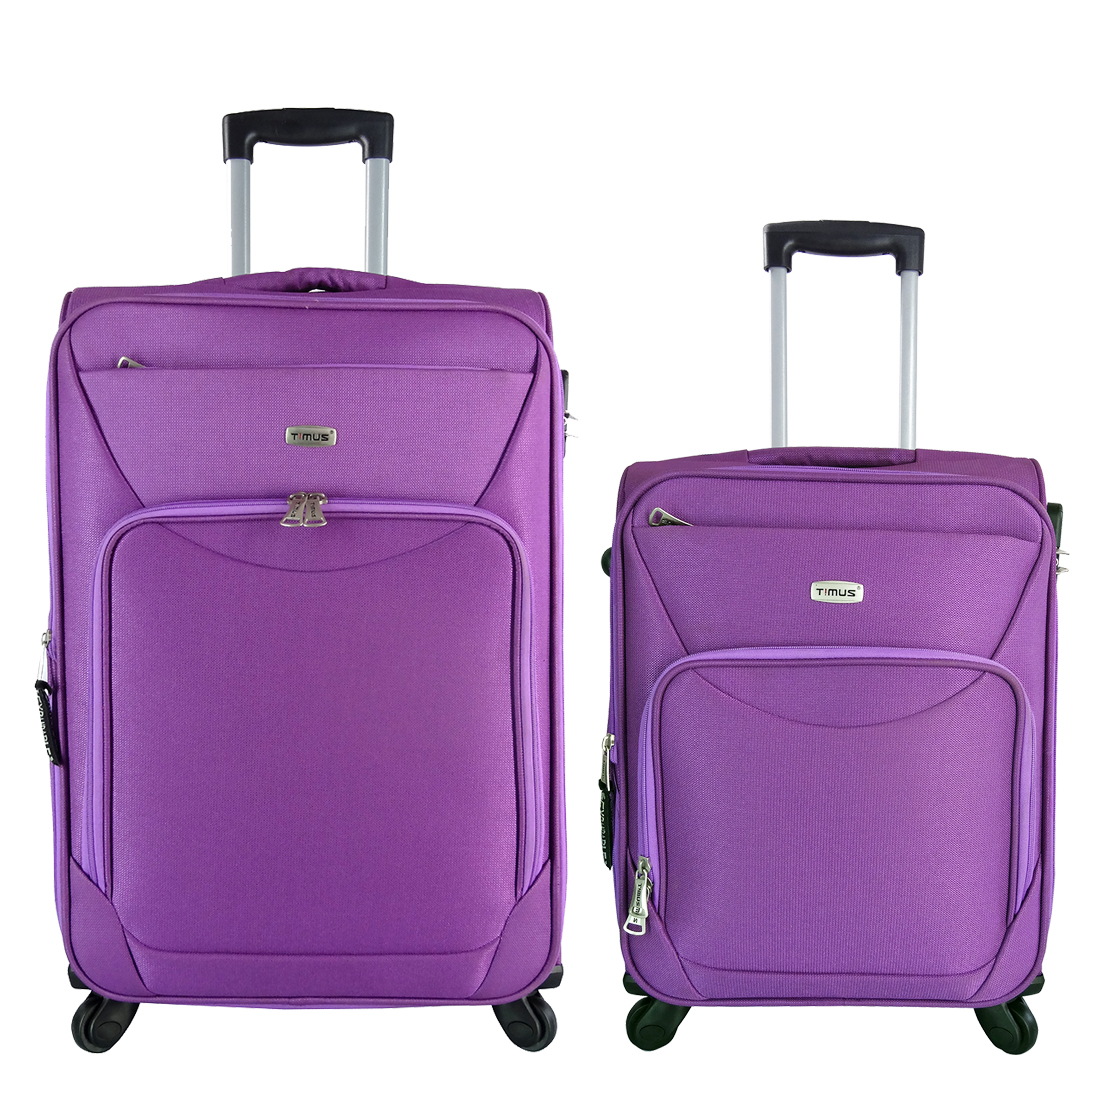 Timus Upbeat Spinner Wine 55   65 Cm 4 Wheel Trolley Expandable Cabin And Check In Luggage 24 Inch  Purple